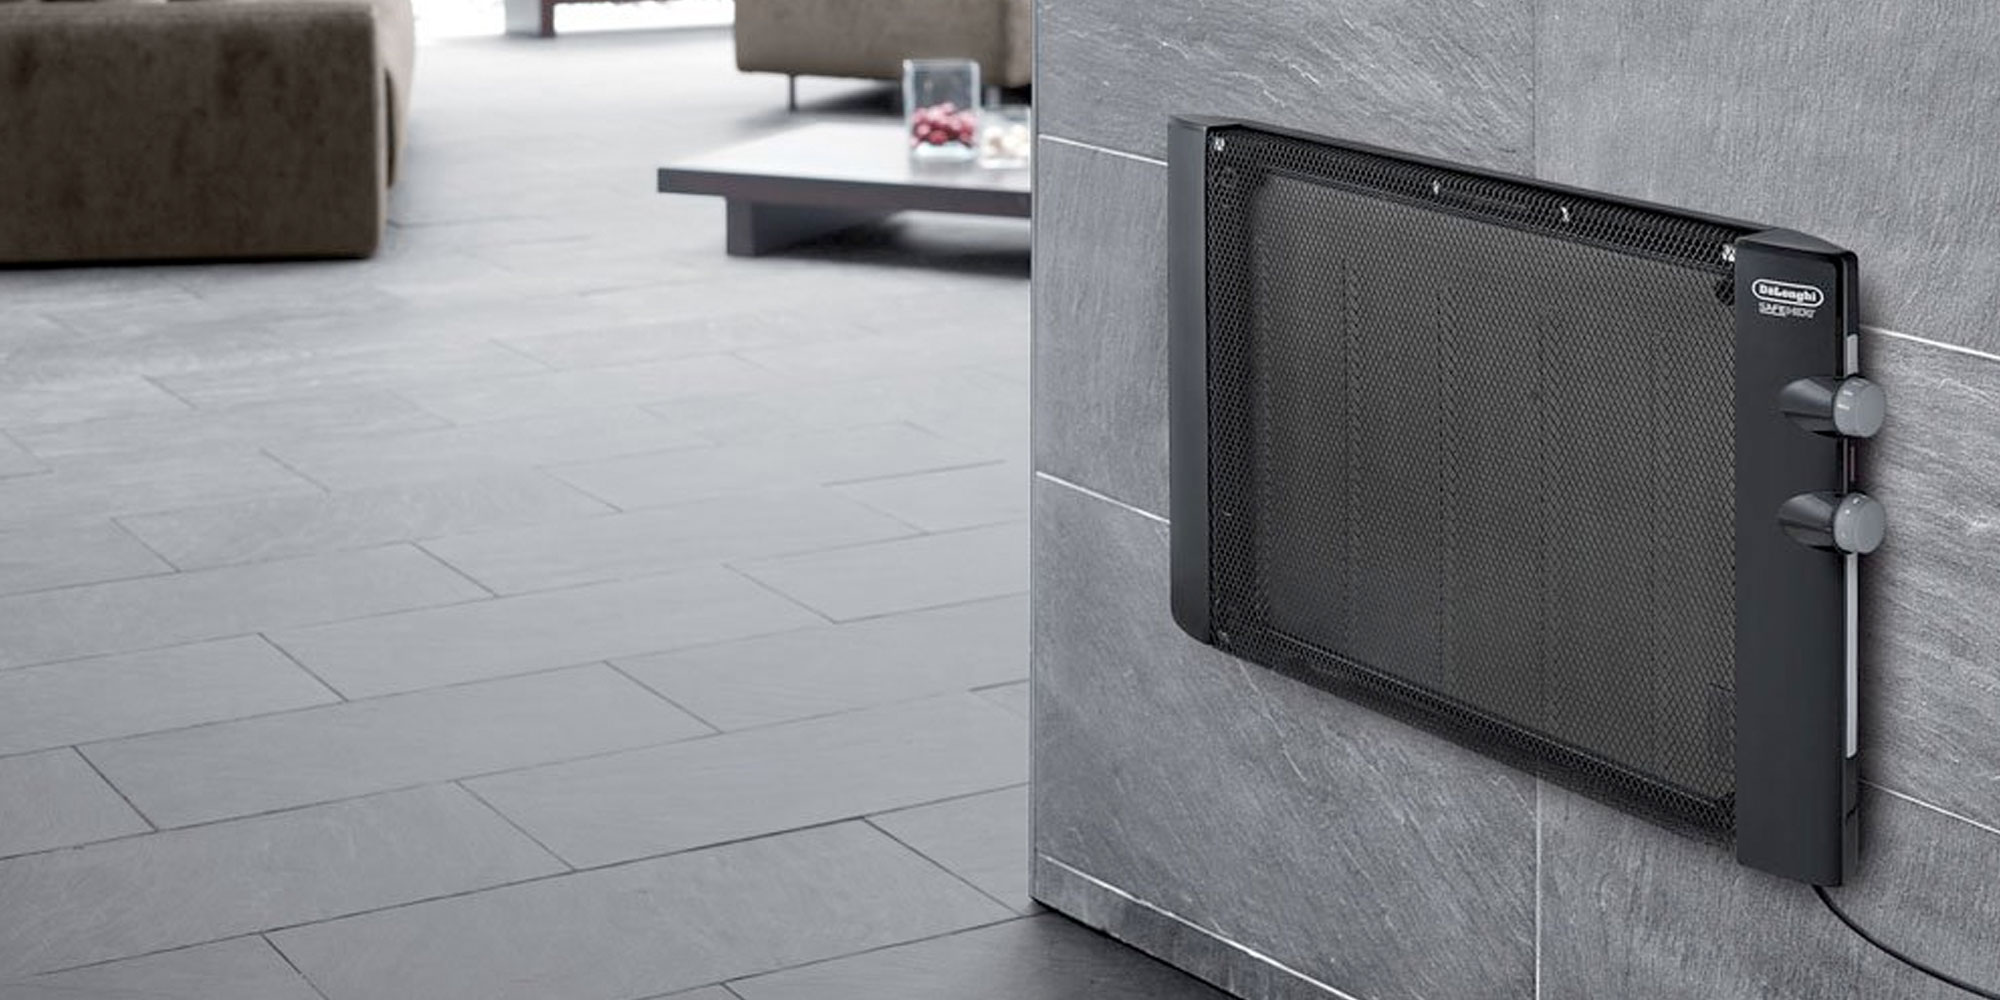 Warm an entire room w/ this 1,500W DeLonghi panel heater for $69 shipped